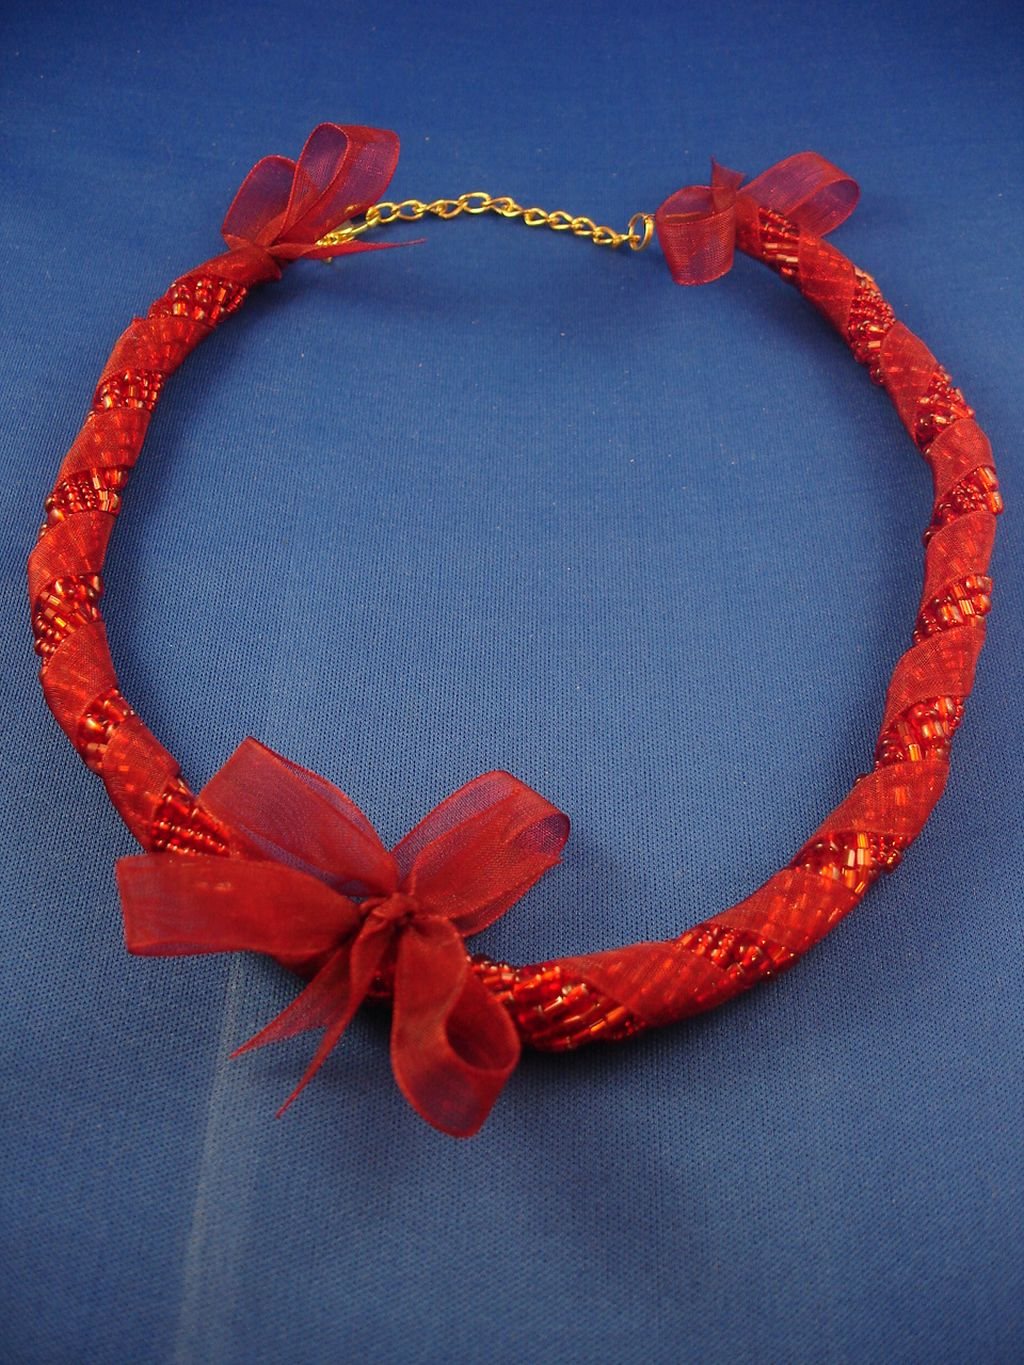 Red Ribbon Necklace, Eight Twisted Strings of Beads, European Fashion Jewelry